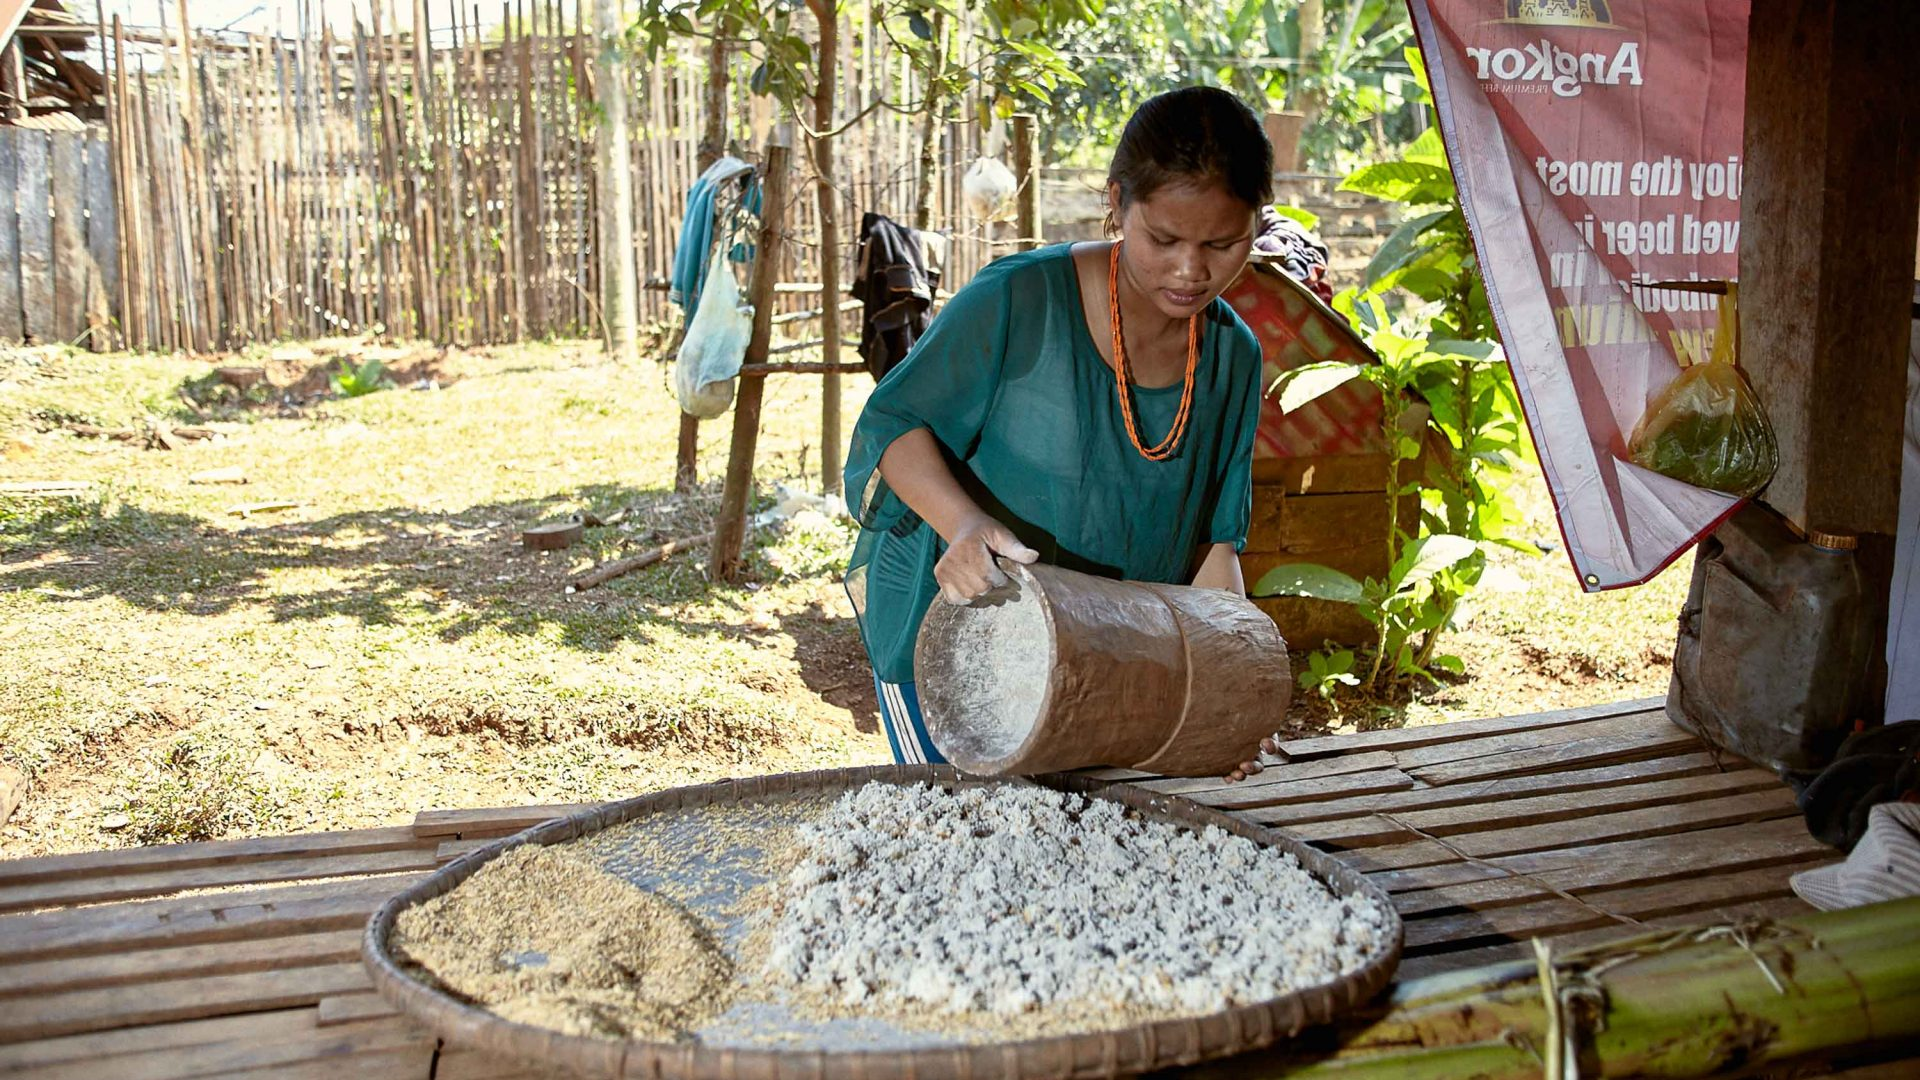 A woman pours out grains in Cambodia.